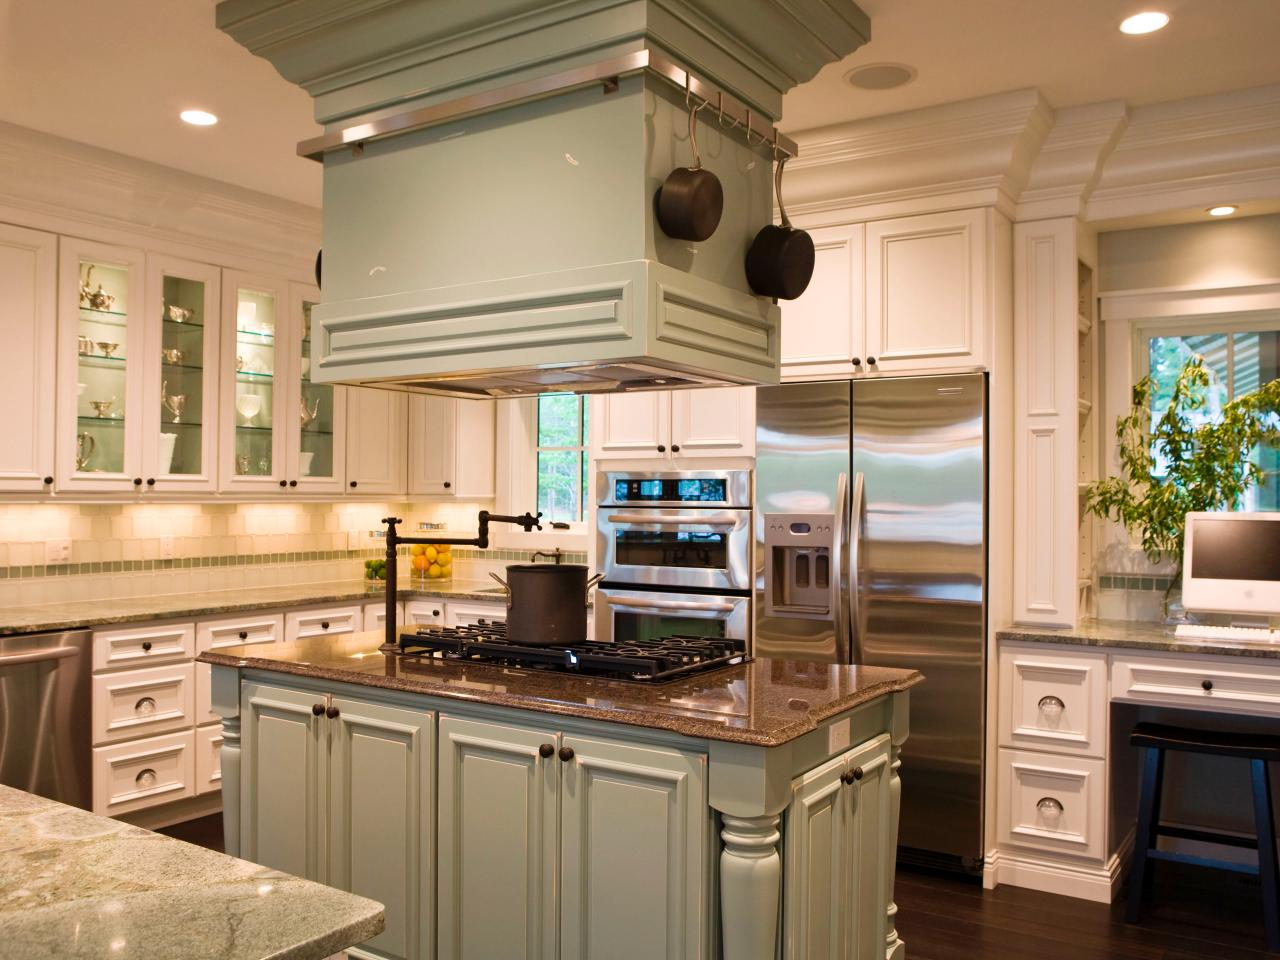 Creating a gourmet kitchen hgtv - Kitchen island color ideas ...